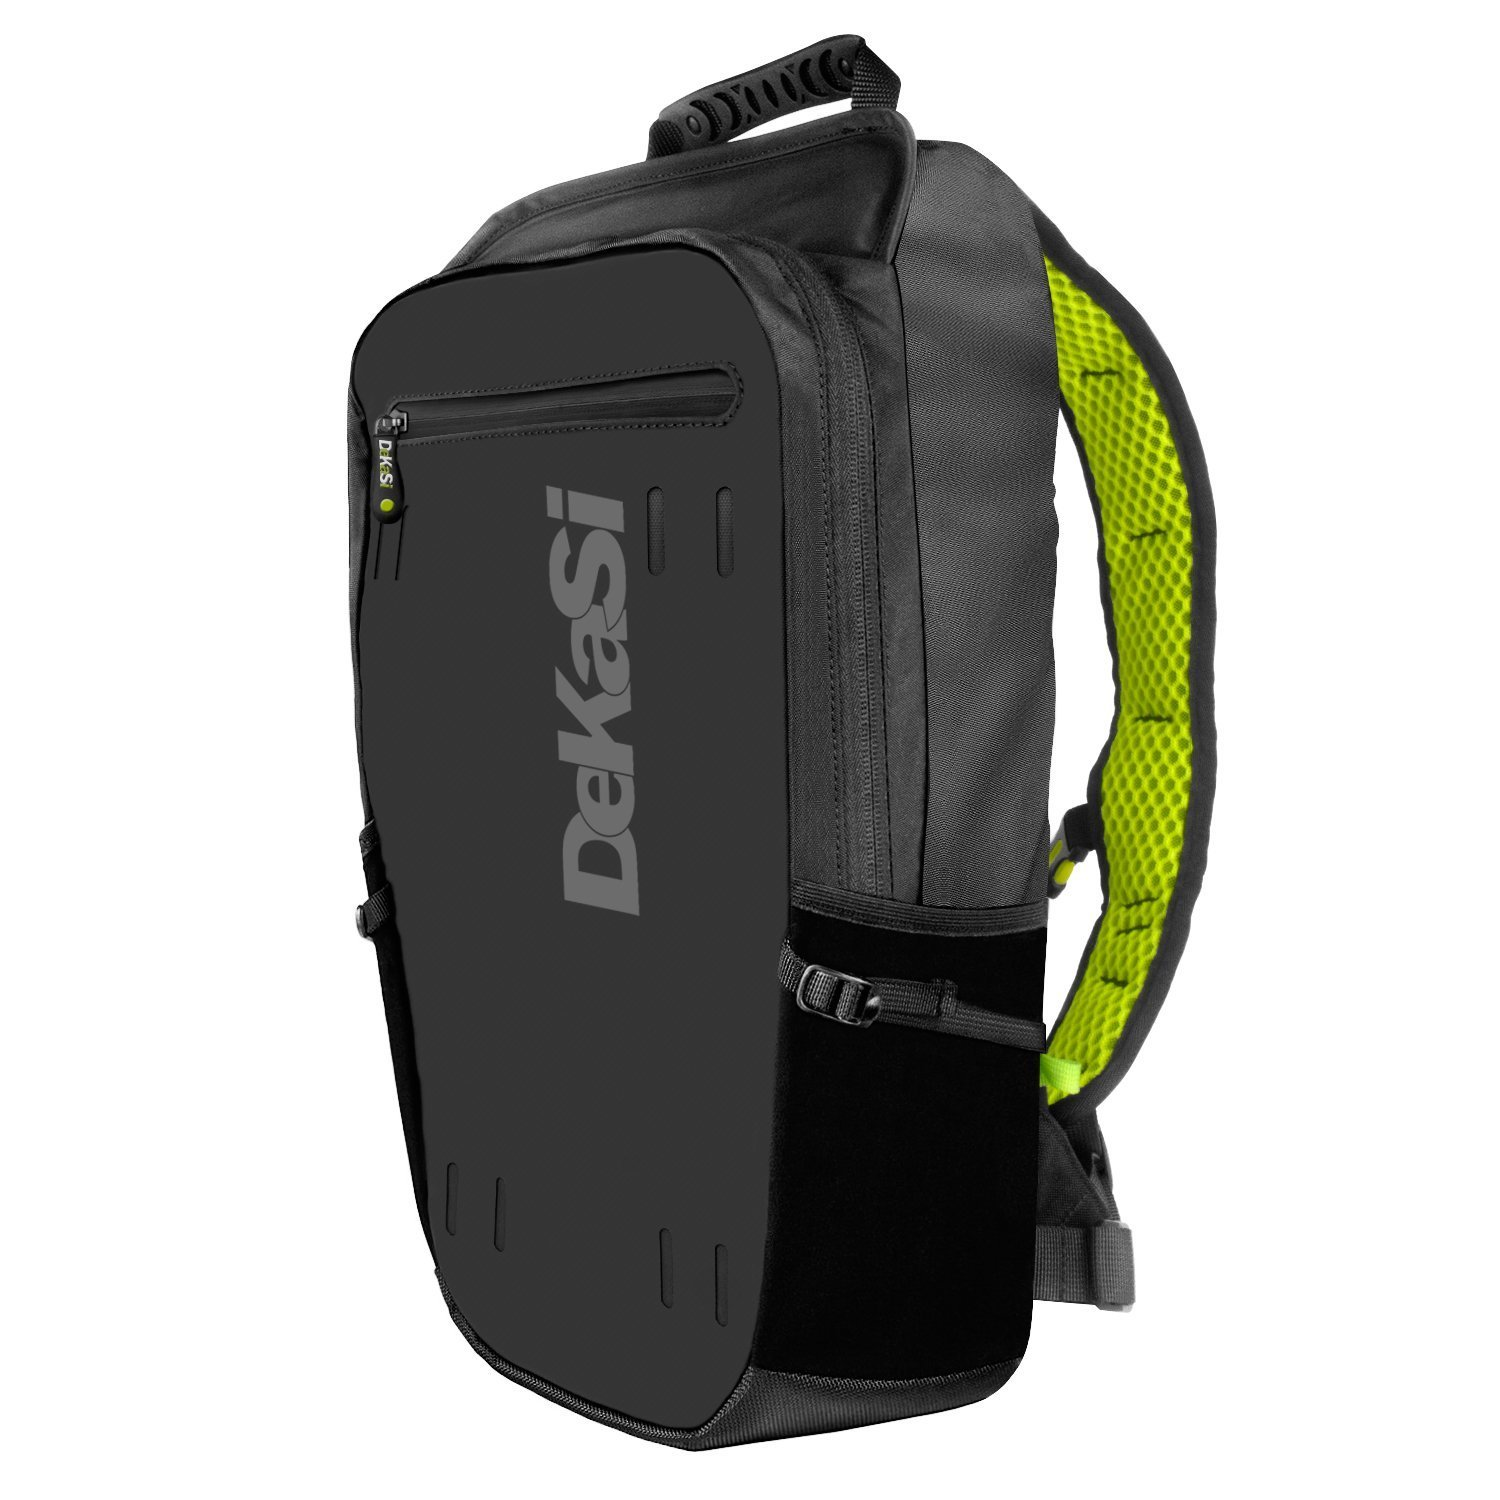 DeKaSi Seeker Backpack Compatible for GoPro Daypack Go Pro Camera Bag Carrying Case Outdoor Rucksack Mochila(Include Backpack Strap Mount and Rain Cover) by DeKaSi